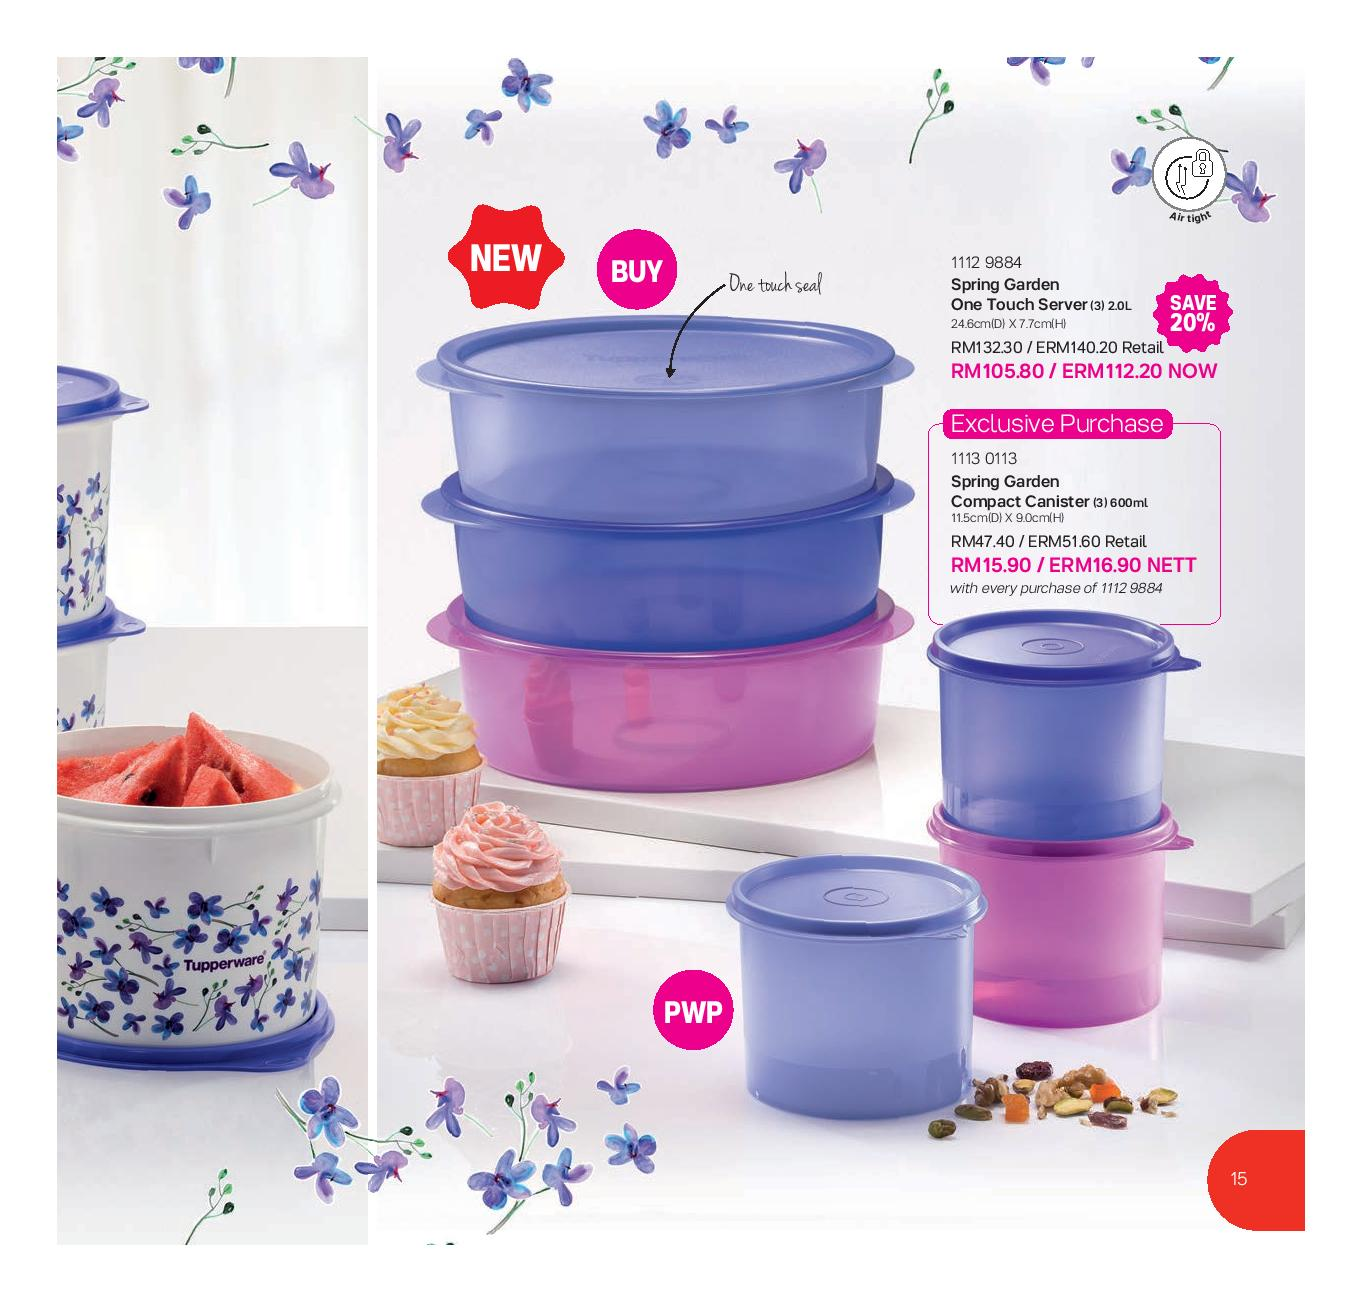 Whats New C aign 18 furthermore Avon Savor Summer Sale together with Shop Avon C aign 26 2016 Sales Online further News New Swipe Share Contest Revealed And Winner Announced moreover Free Woodland Retreat Candle. on avon catalogs 2016